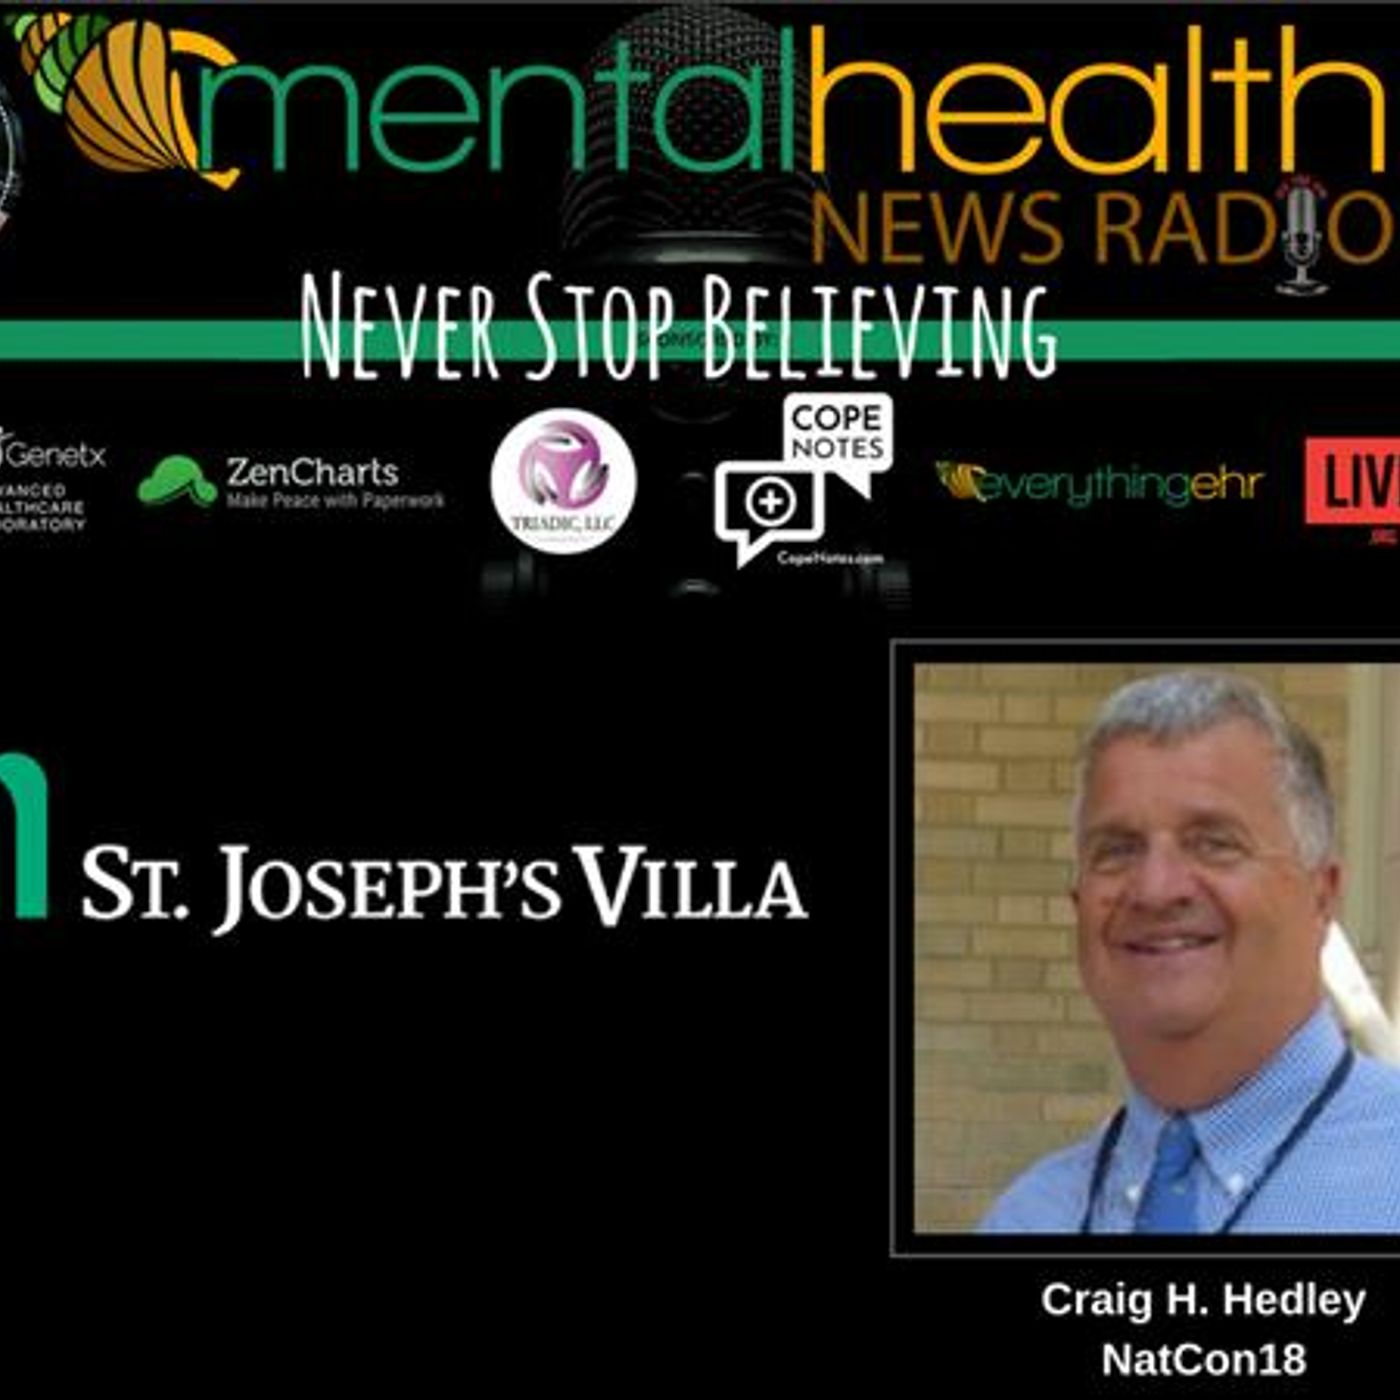 Mental Health News Radio - Never Stop Believing with Craig Hedley